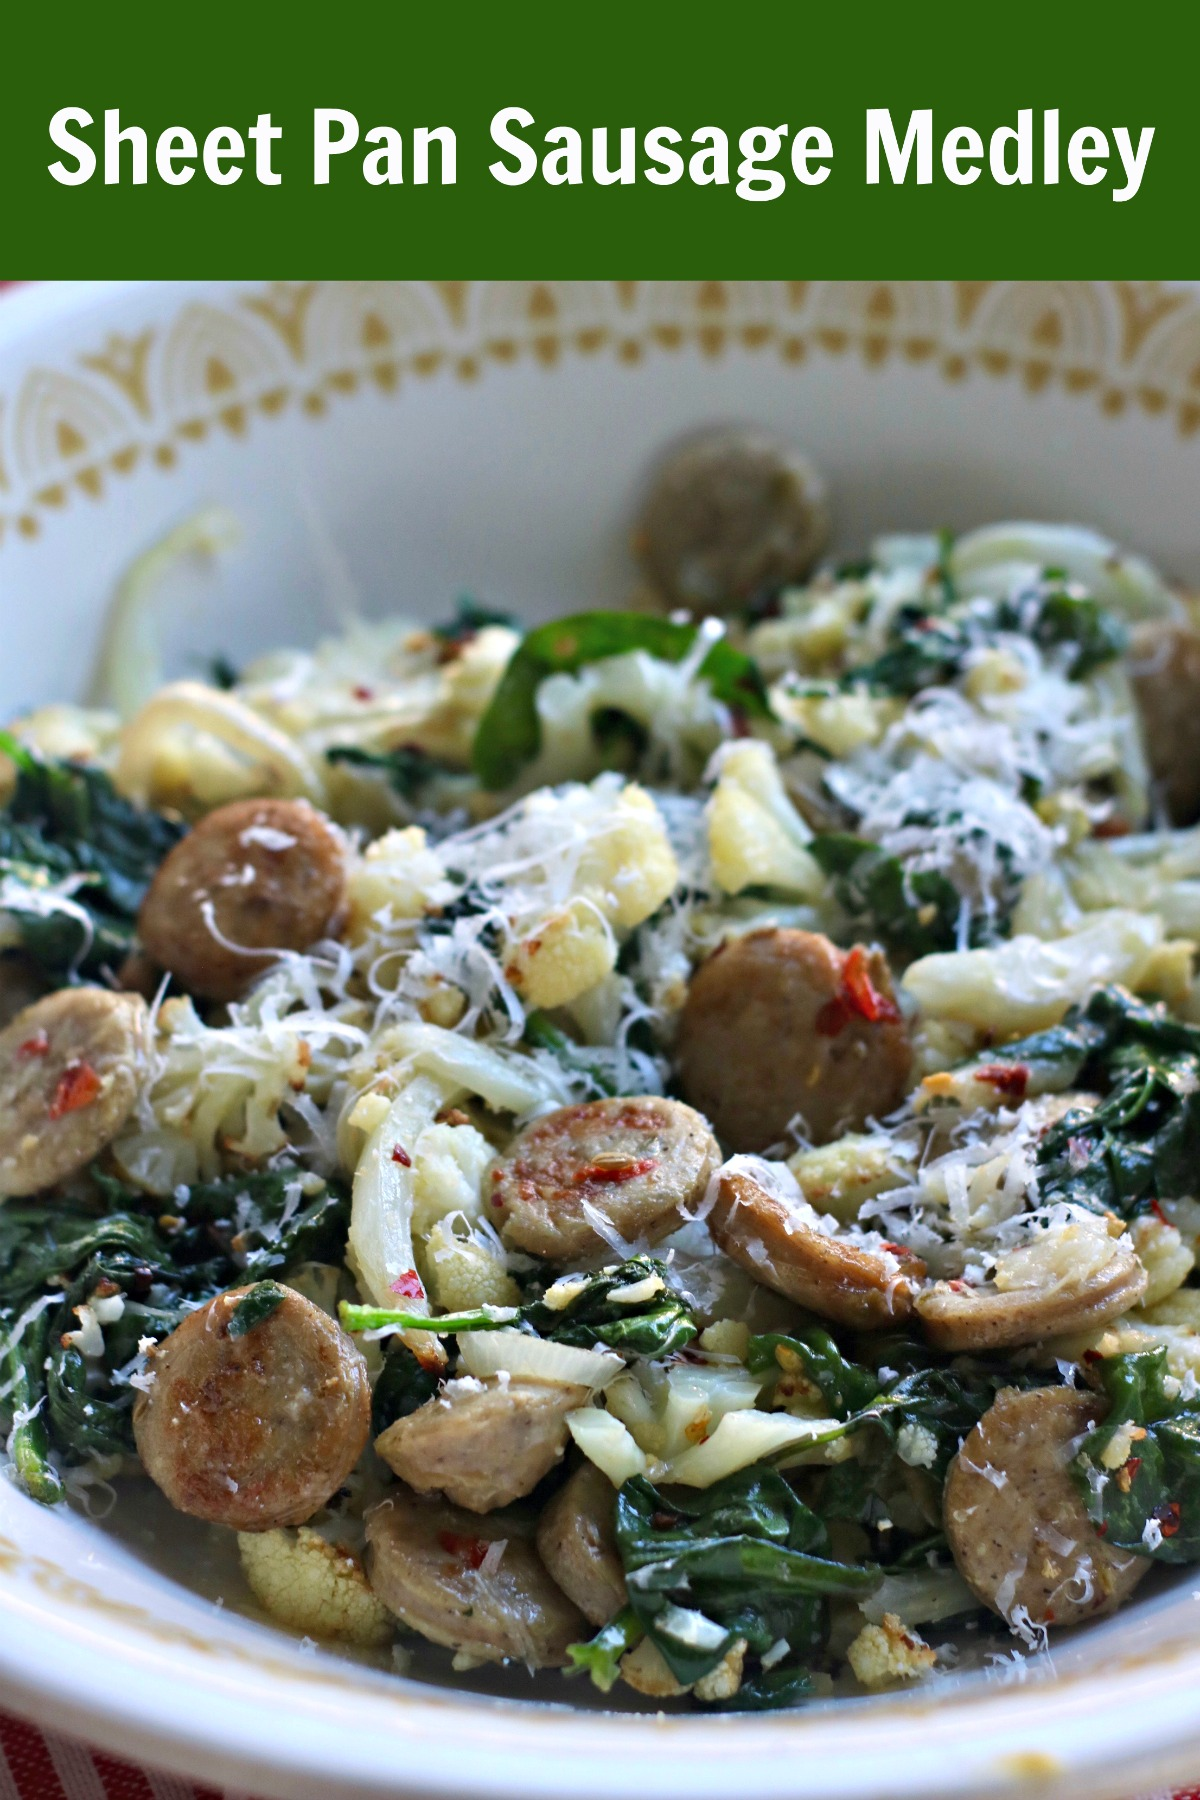 #ad Easy Sheet Pan or Air fryer Dinner with Al Fresco Italian Chicken Sausage, spinach, onion, and cauliflower. Made in twenty mintues. #ketodinner #easydinner #chickensausage #Italiansausagerecipe #Easydinnerrecipe #lowcarbdinner #ketodinner via @angelaroberts